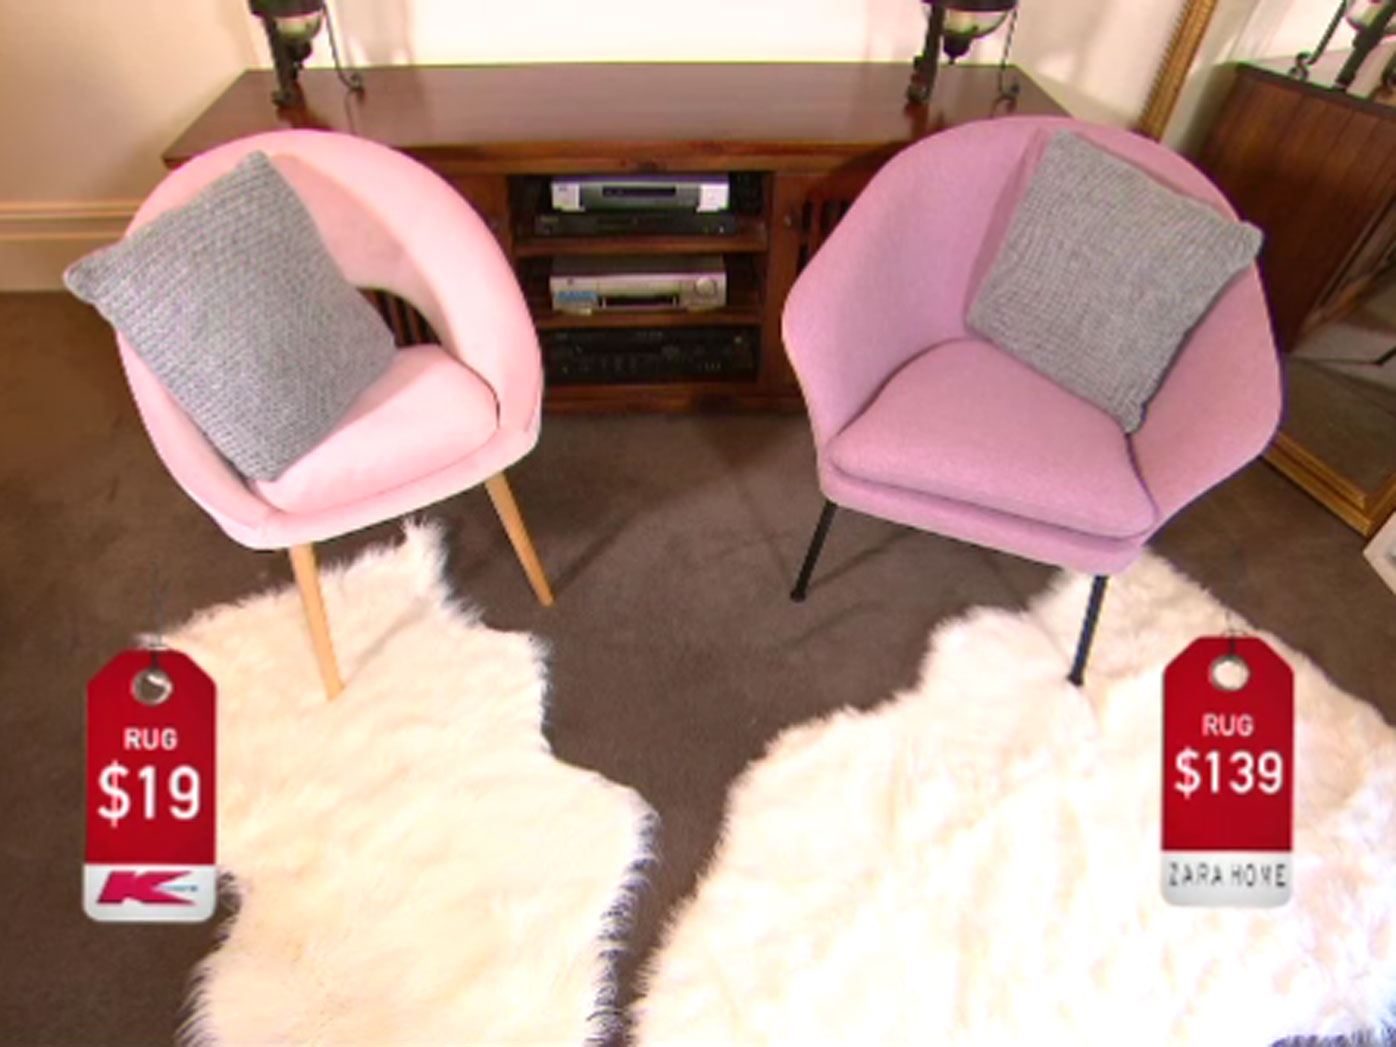 15c730c58ac Kmart s best look-alike buys  Dress your family and restyle your home on a  budget - 9Honey